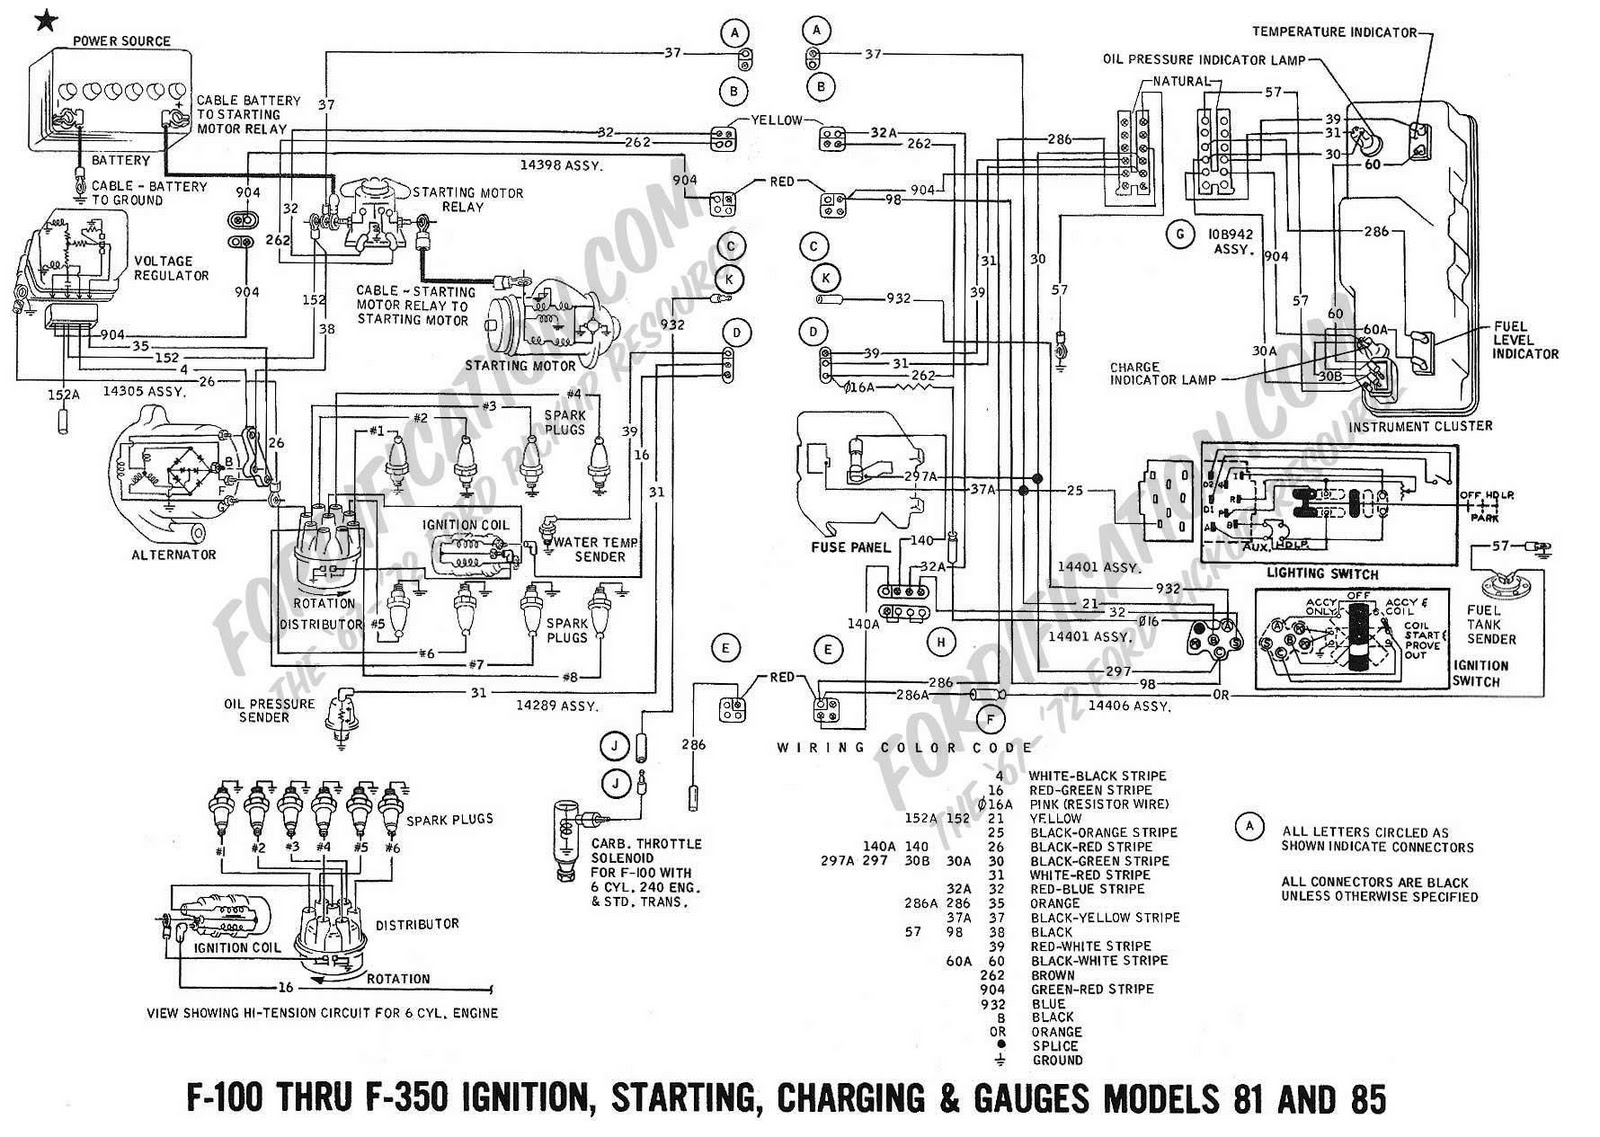 hight resolution of 1968 ford f100 wiring diagram color wiring diagrams box 65 ford wiring diagram 1966 f100 wiring